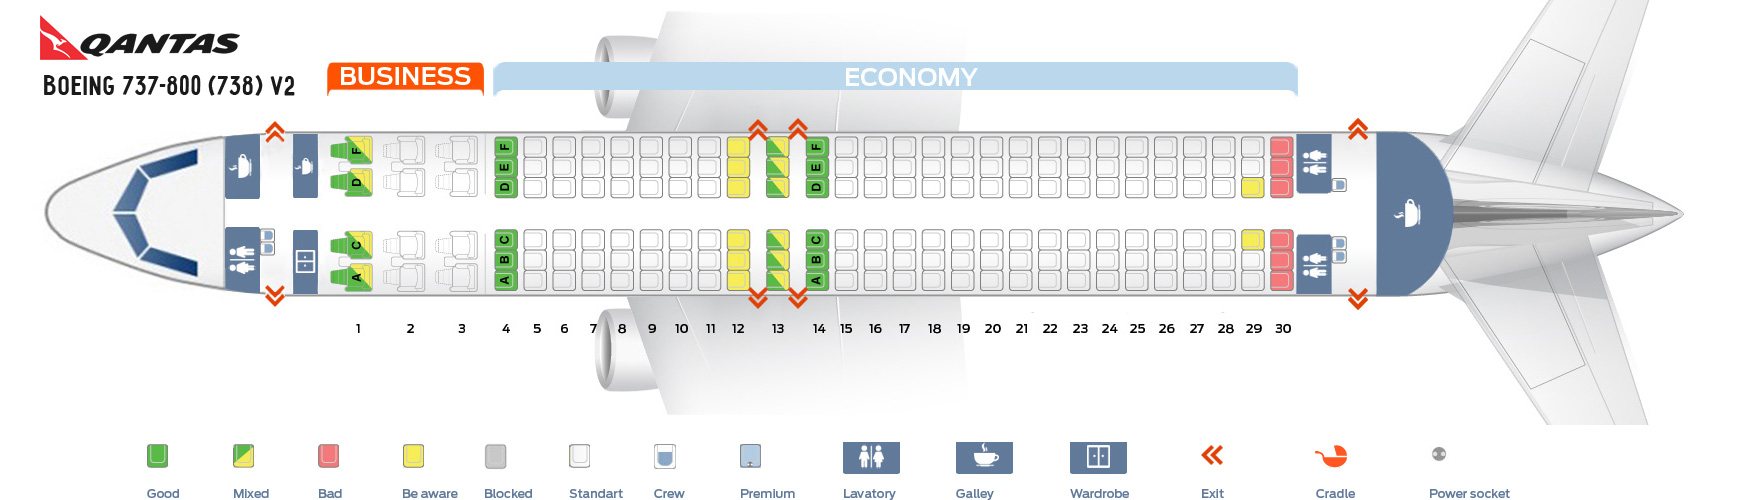 Seat Map Boeing 737-800 V2 Qantas Airways